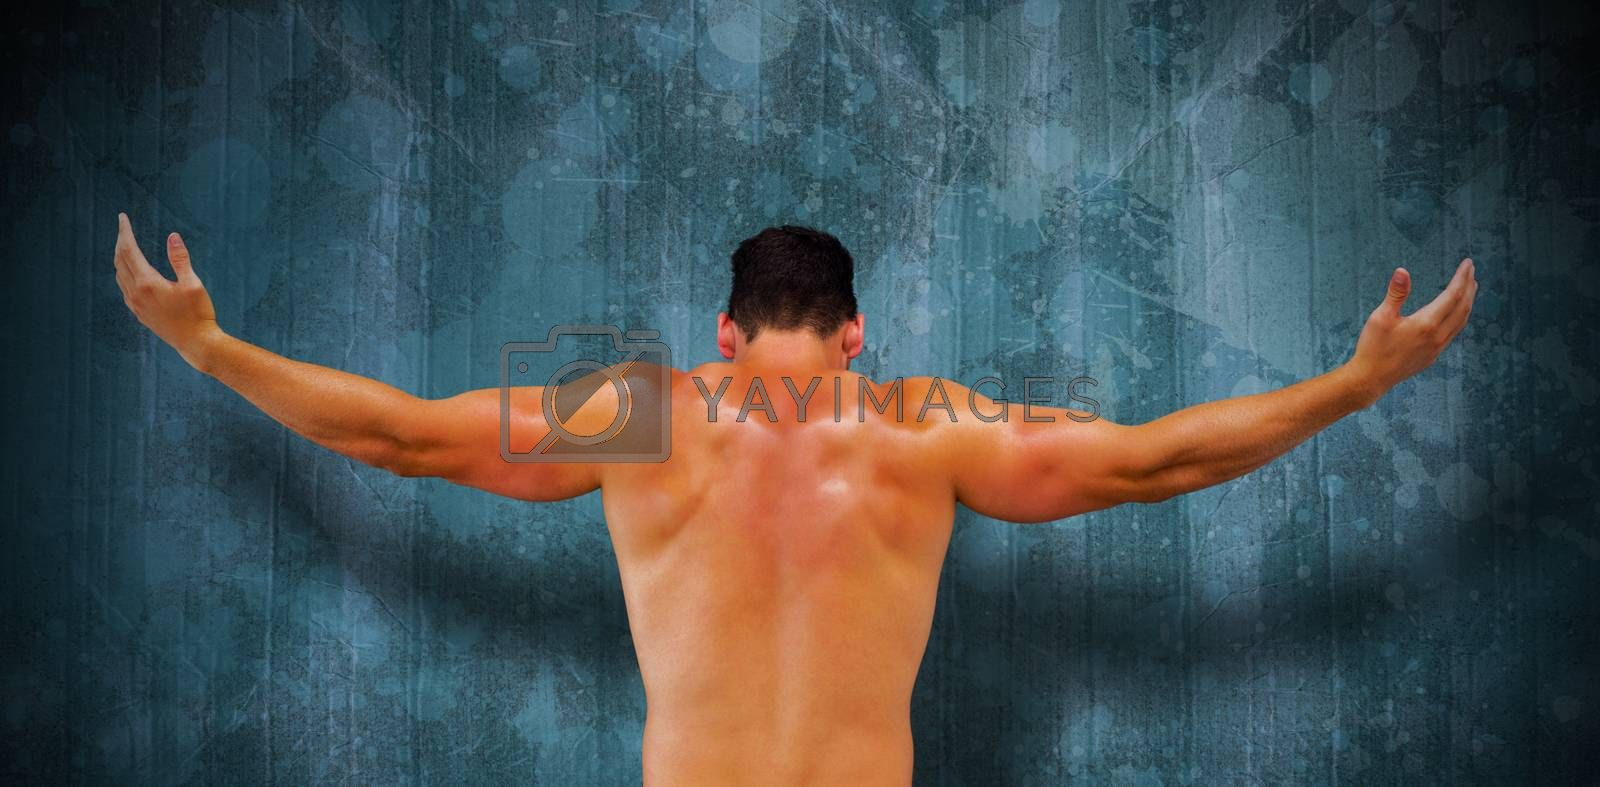 Bodybuilder posing against blue paint splashed surface